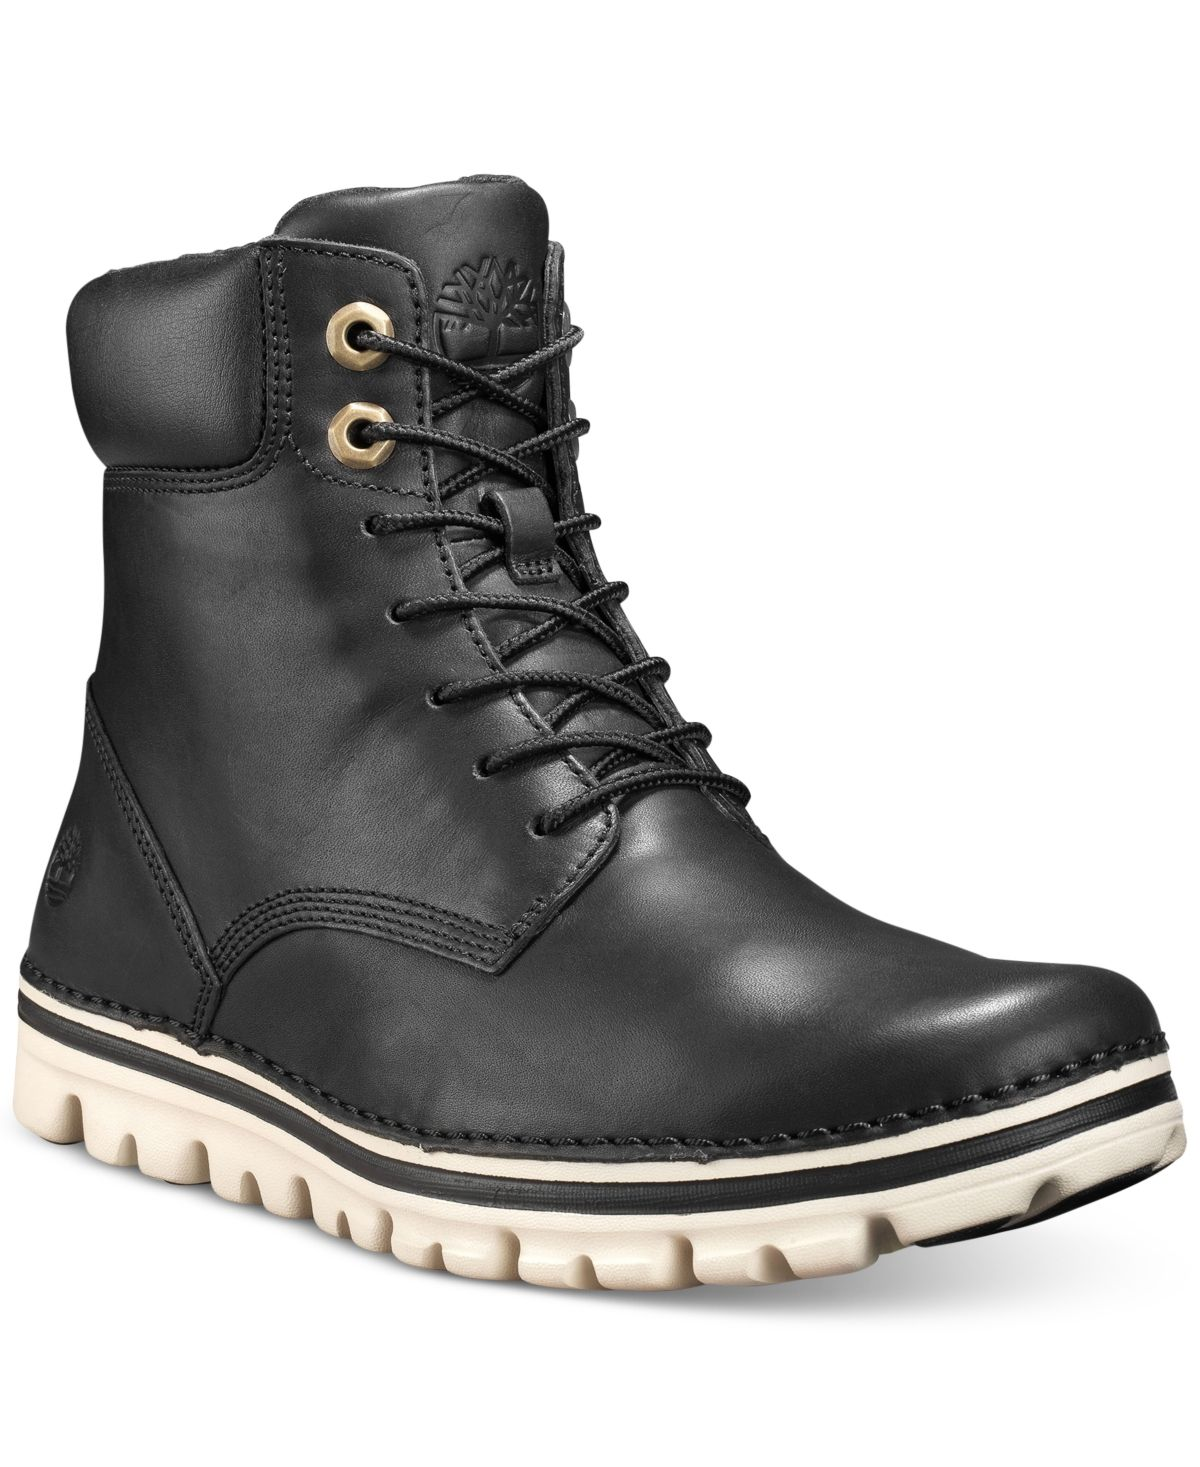 Leather boots women, Timberland boots